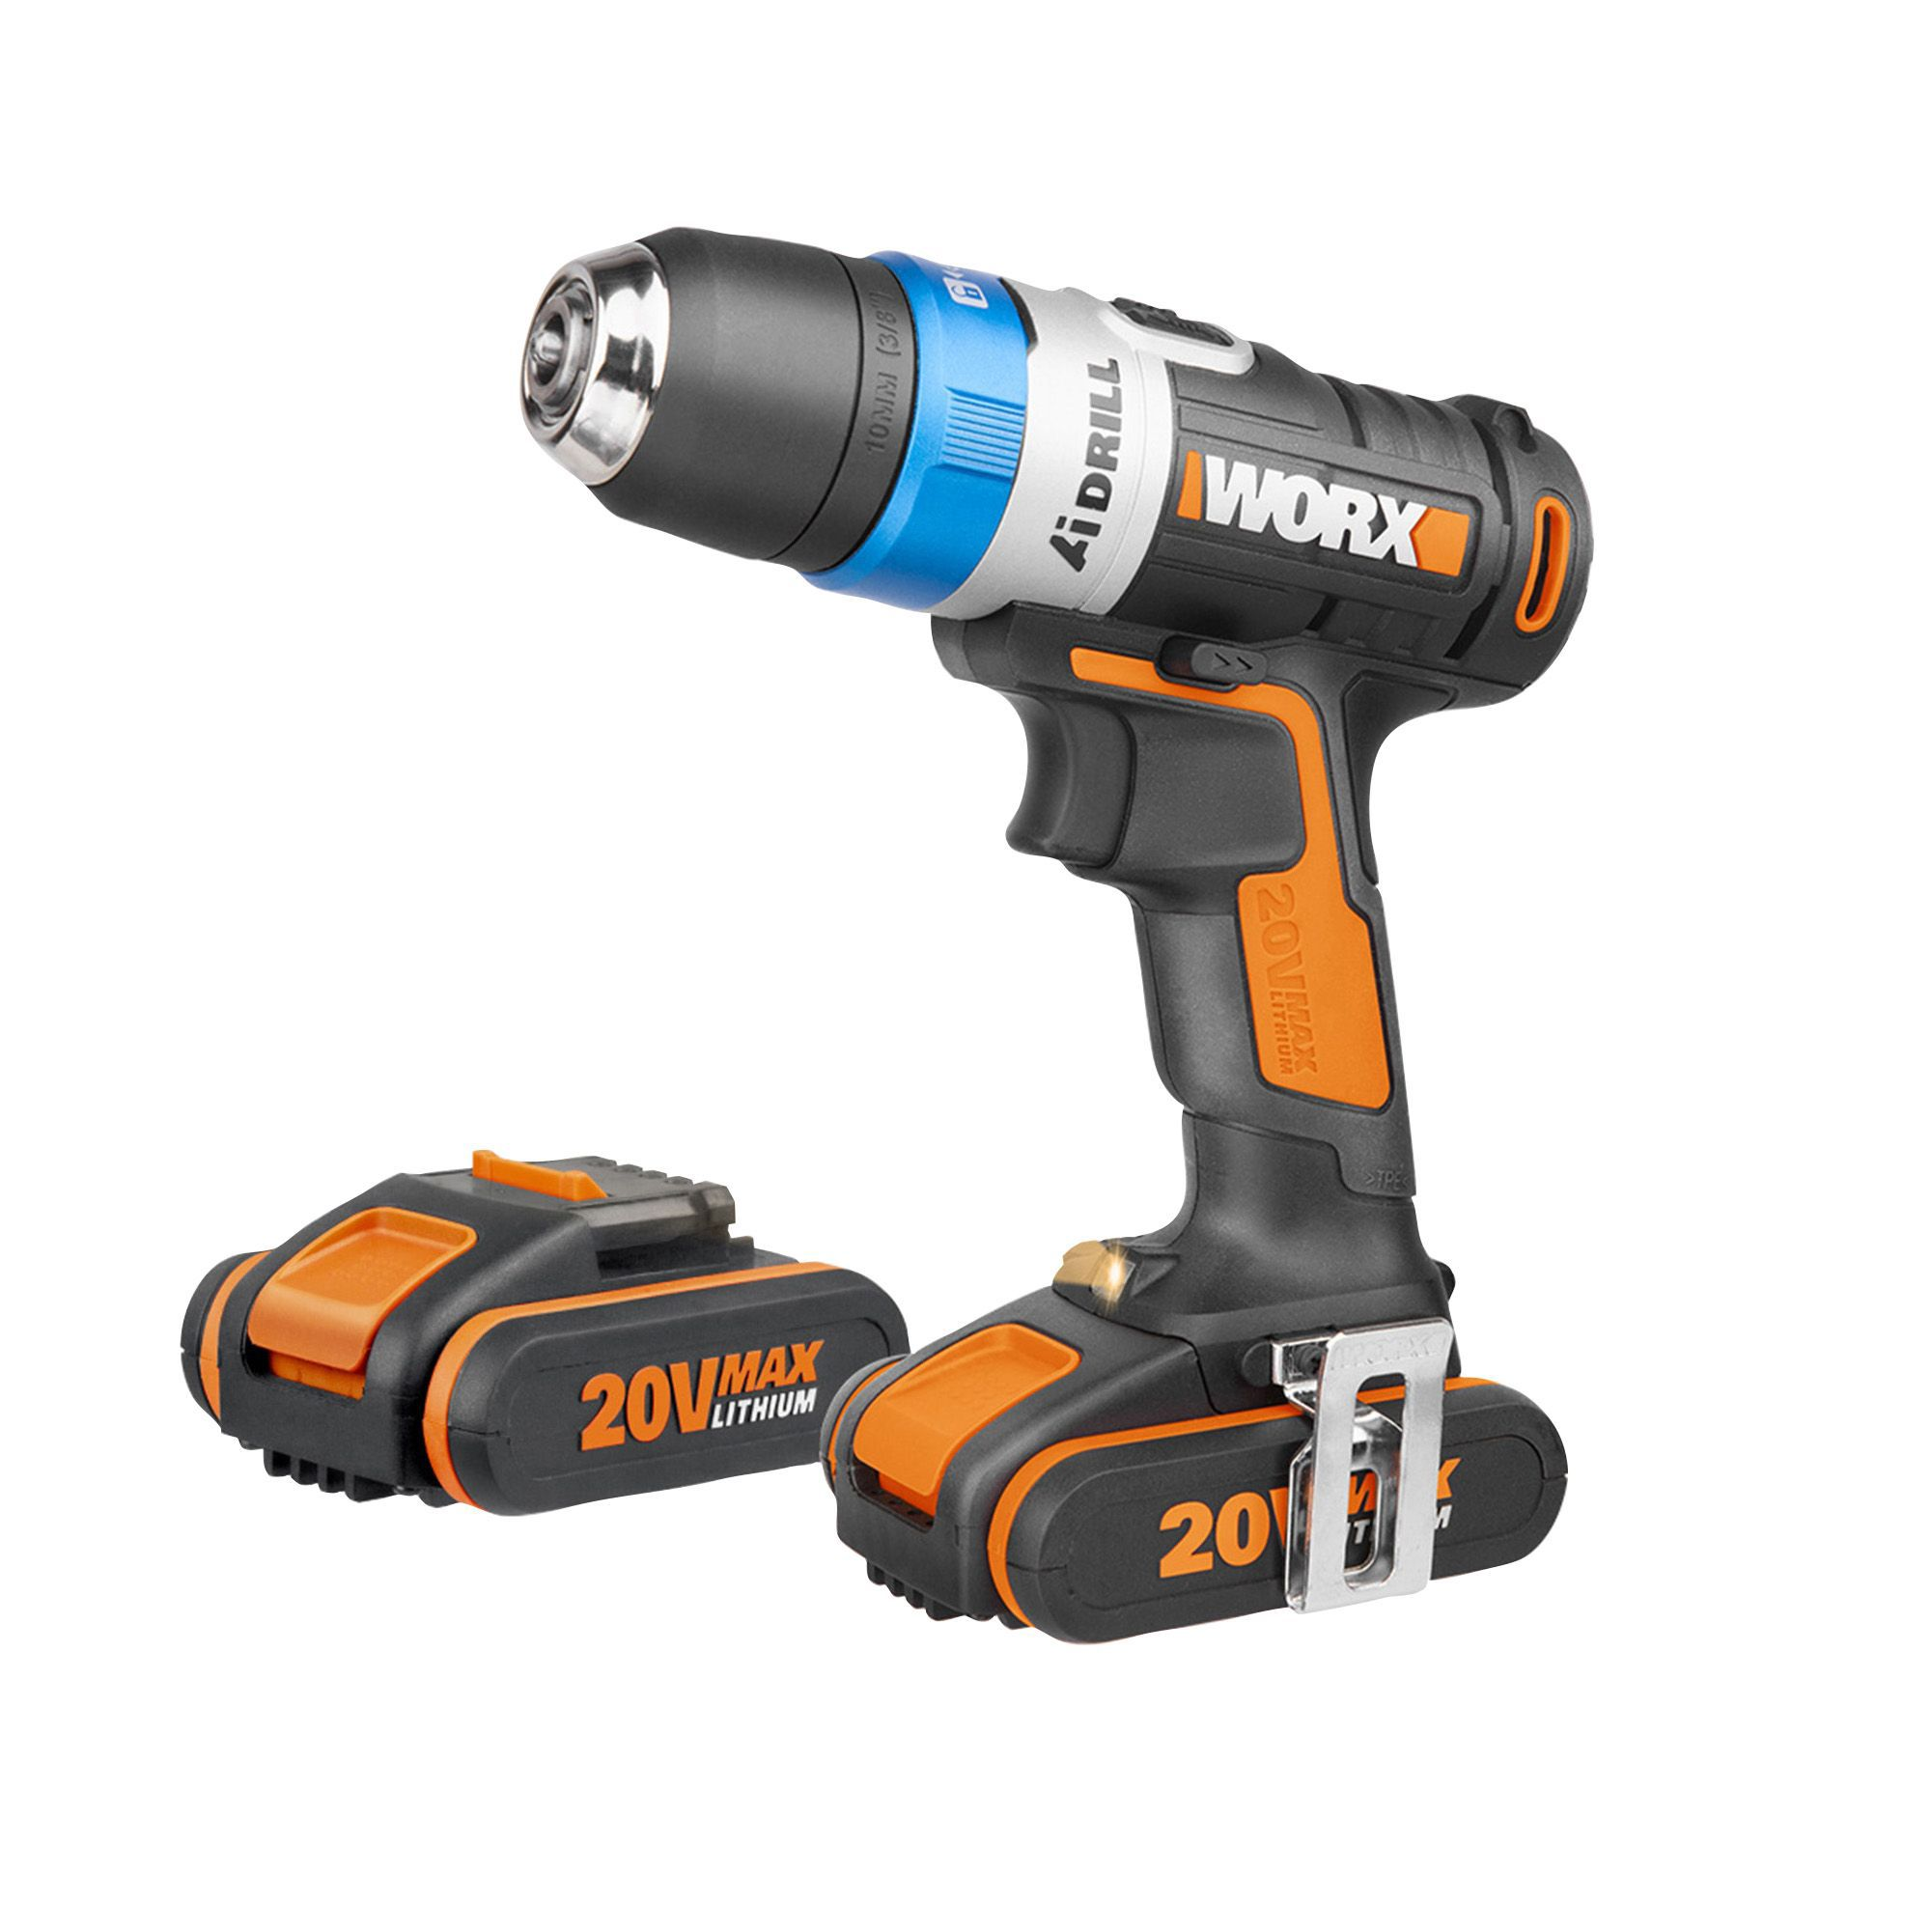 worx powershare cordless 20v 2a li ion drill 2 batteries wx178 1 departments tradepoint. Black Bedroom Furniture Sets. Home Design Ideas